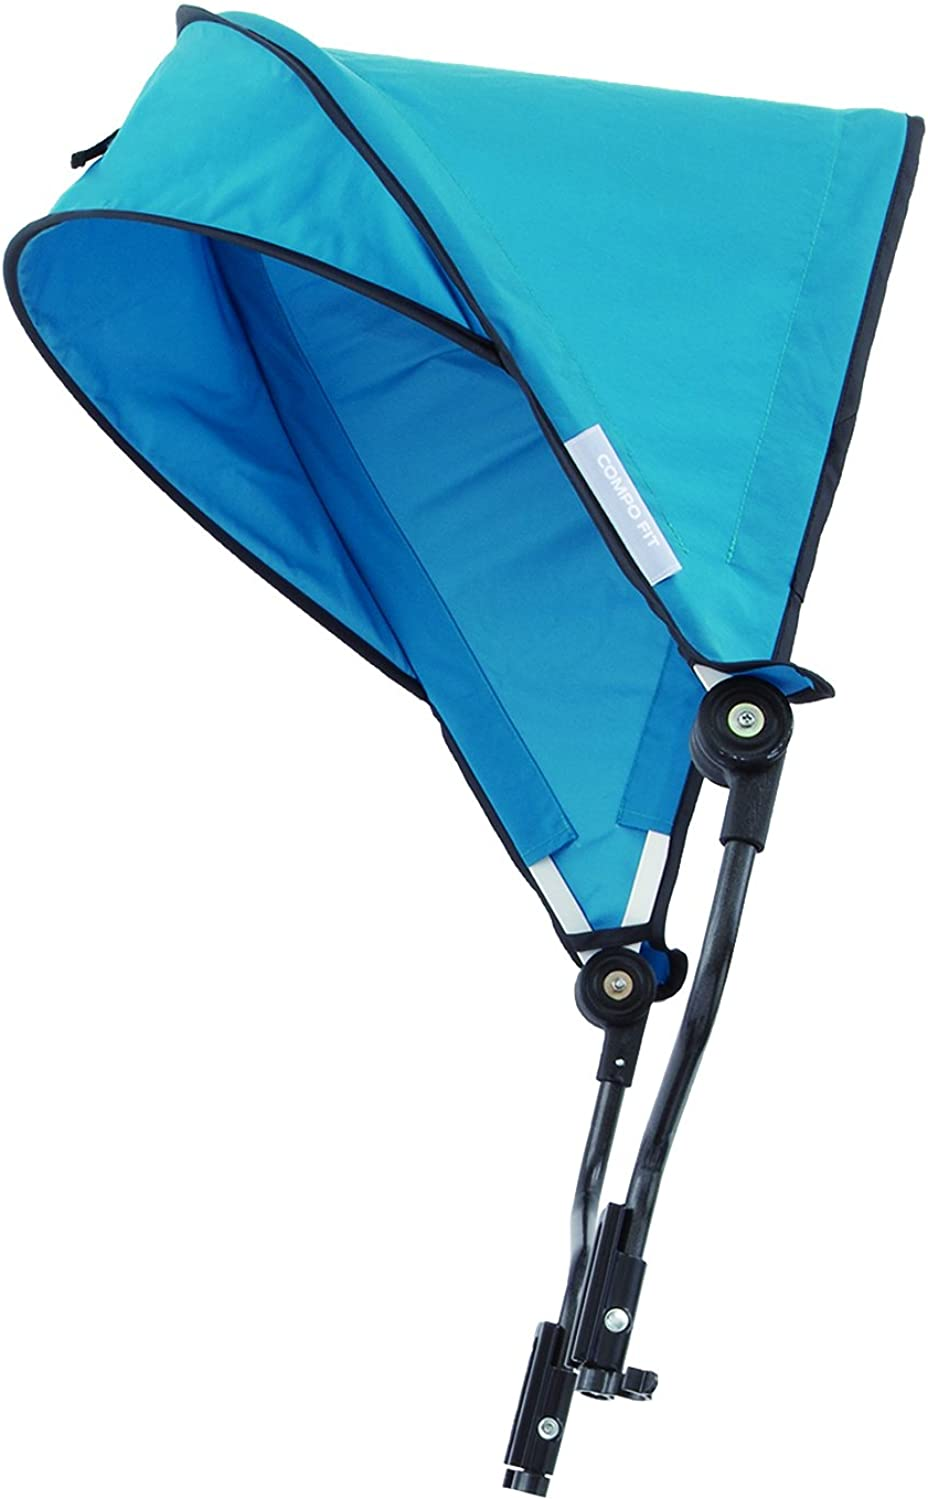 Aidesu (ides) component fit (compofit) tricycle sunshade turquoise blueee